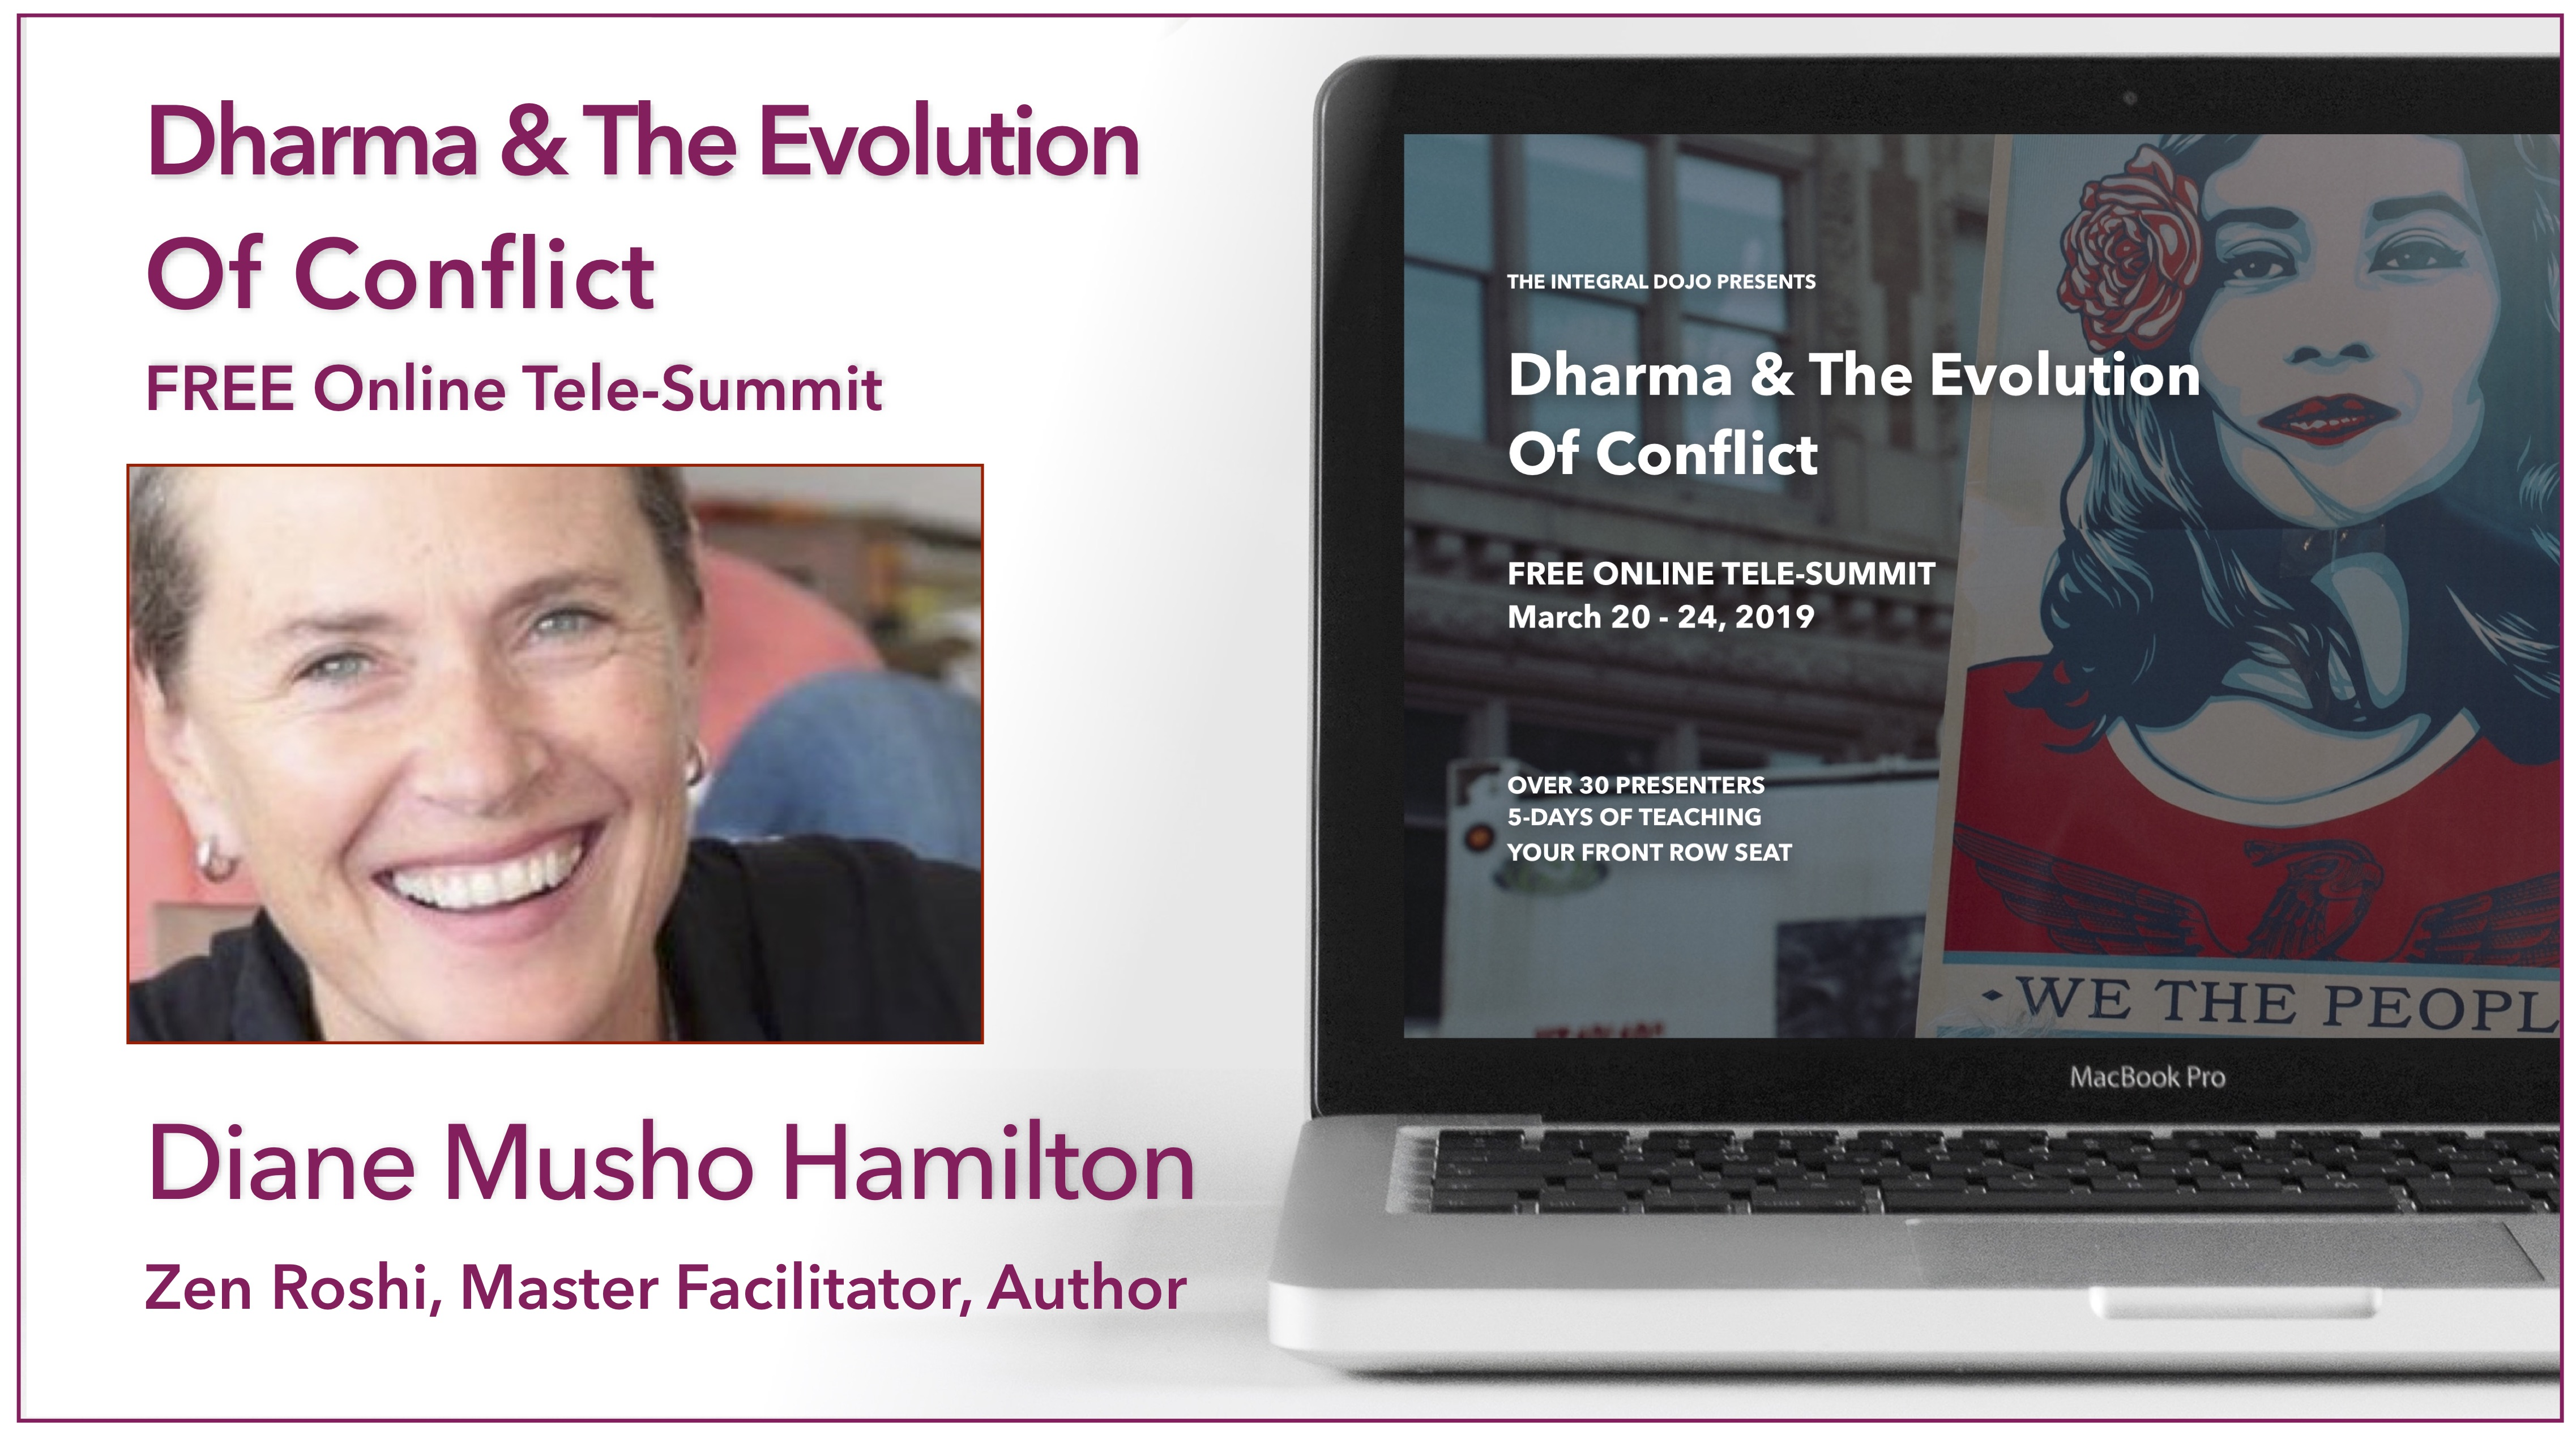 Dharma & The Evolution Of Conflict Tele-summit